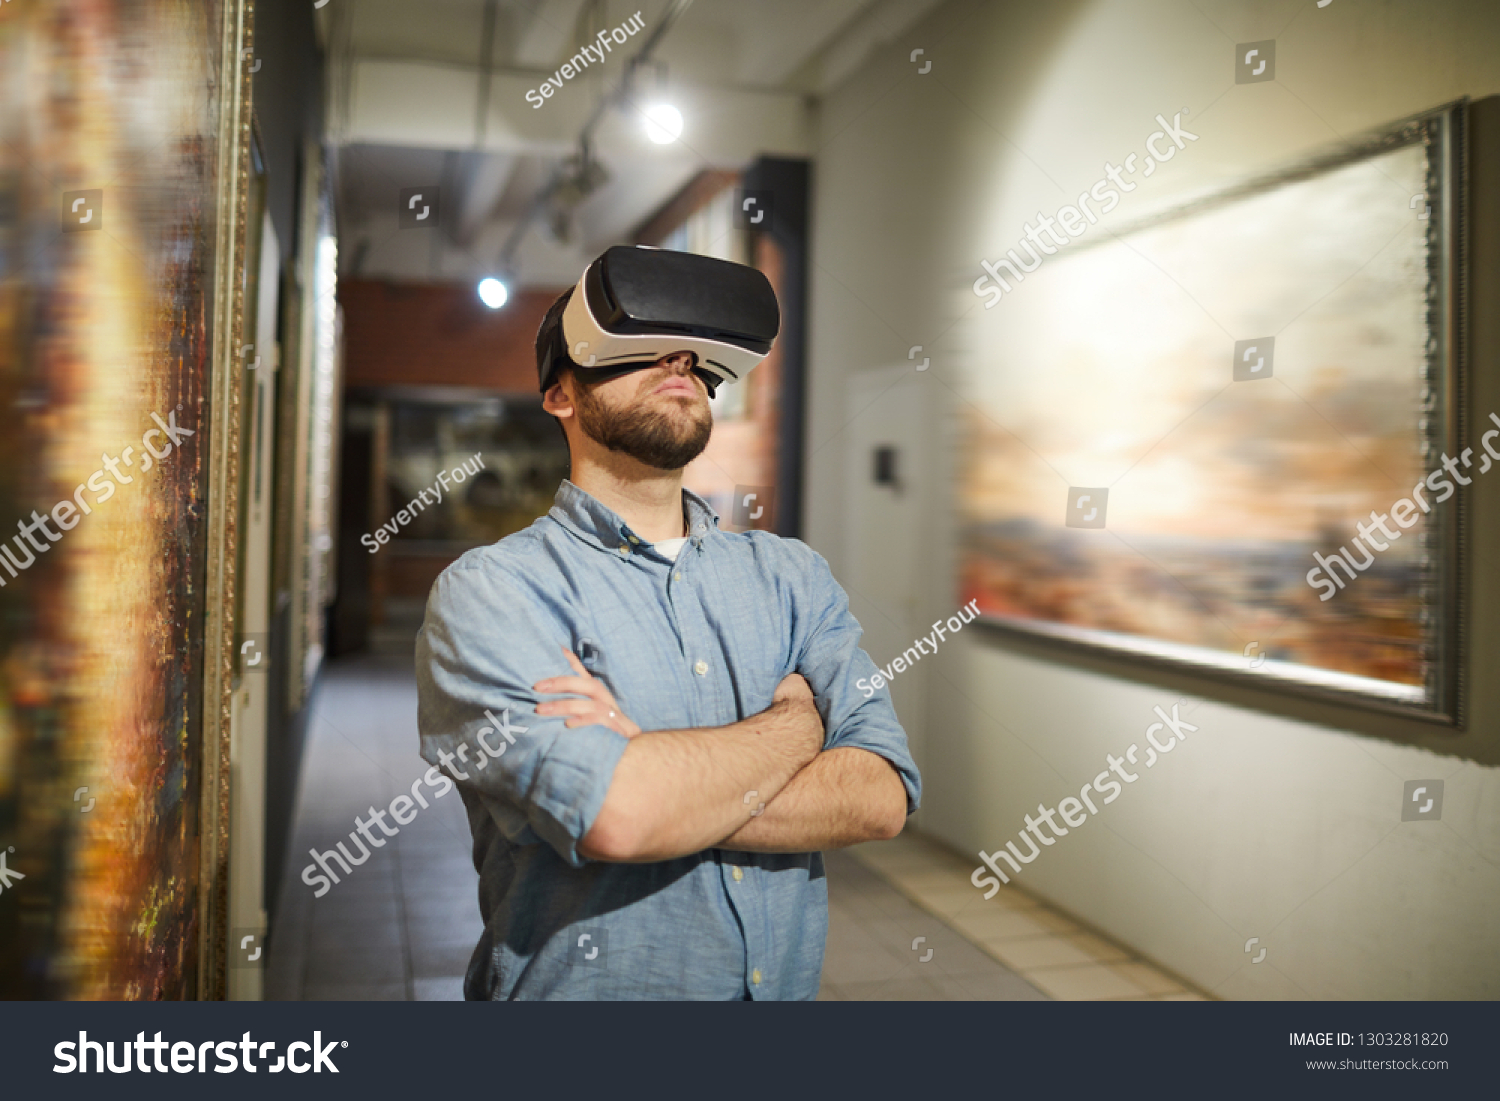 Waist up portrait of modern man wearing VR headset during virtual tour in art gallery or museum, copy space #1303281820